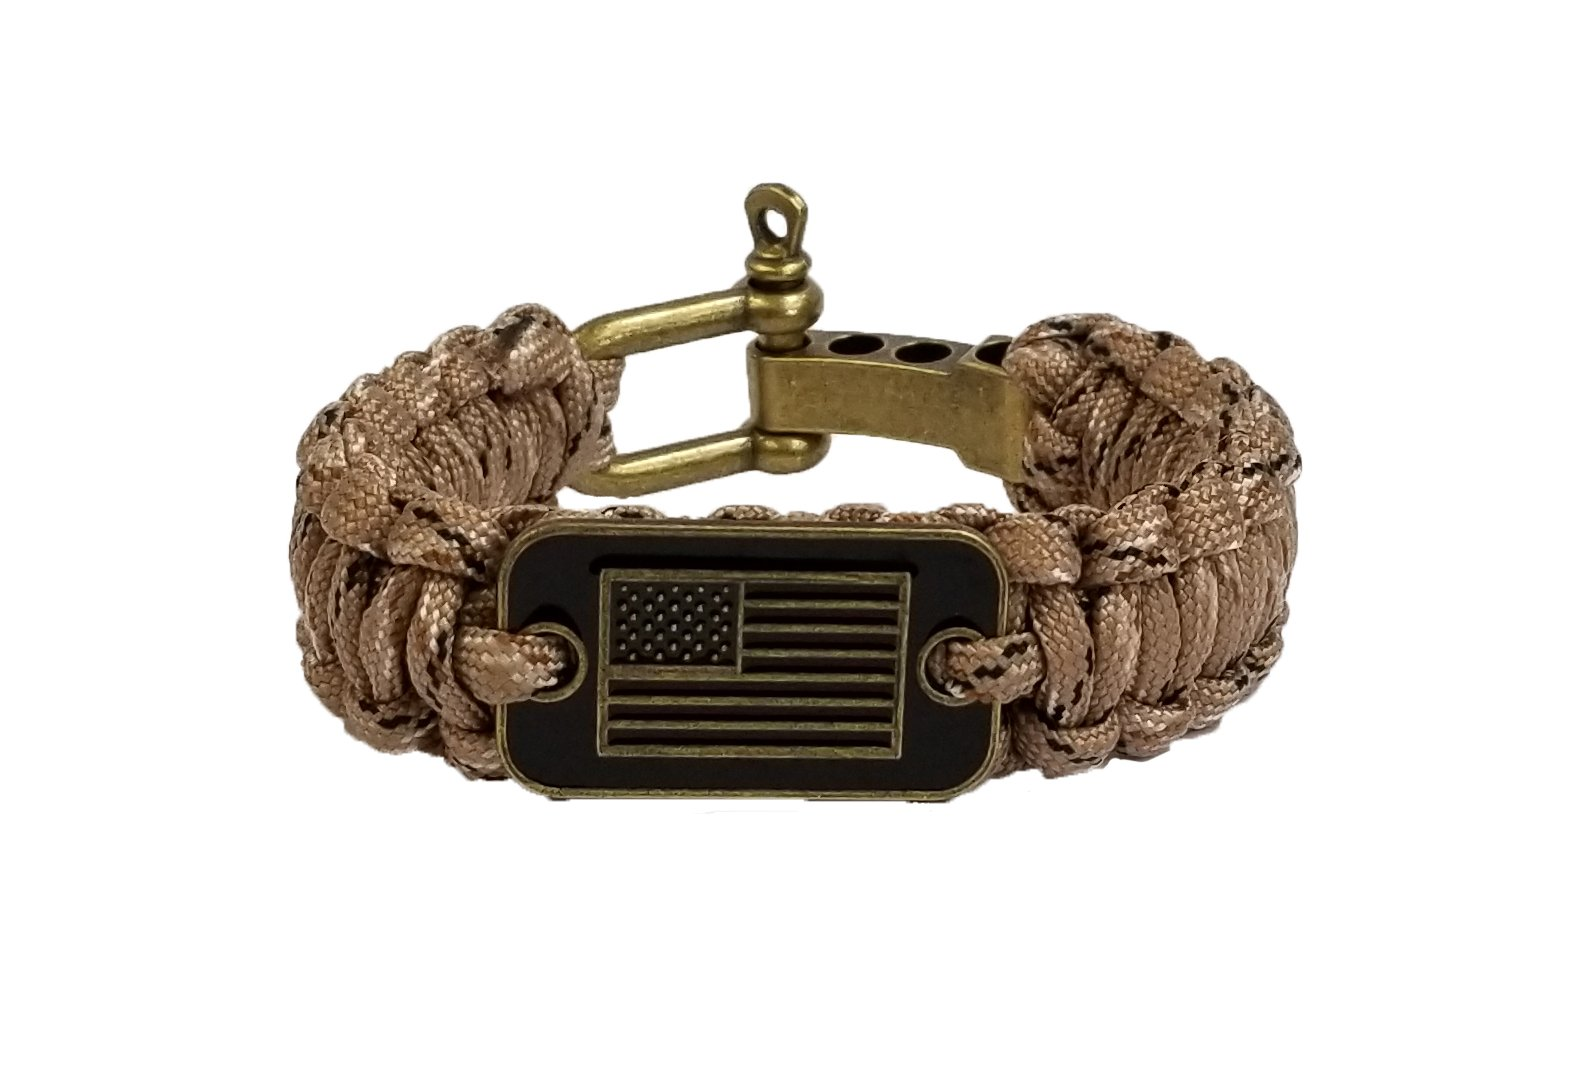 iHeartDogs Desert Camo Paracord Bracelet | 20% of Sales are Donated to Help Pair Veterans with Shelter or Service Dogs